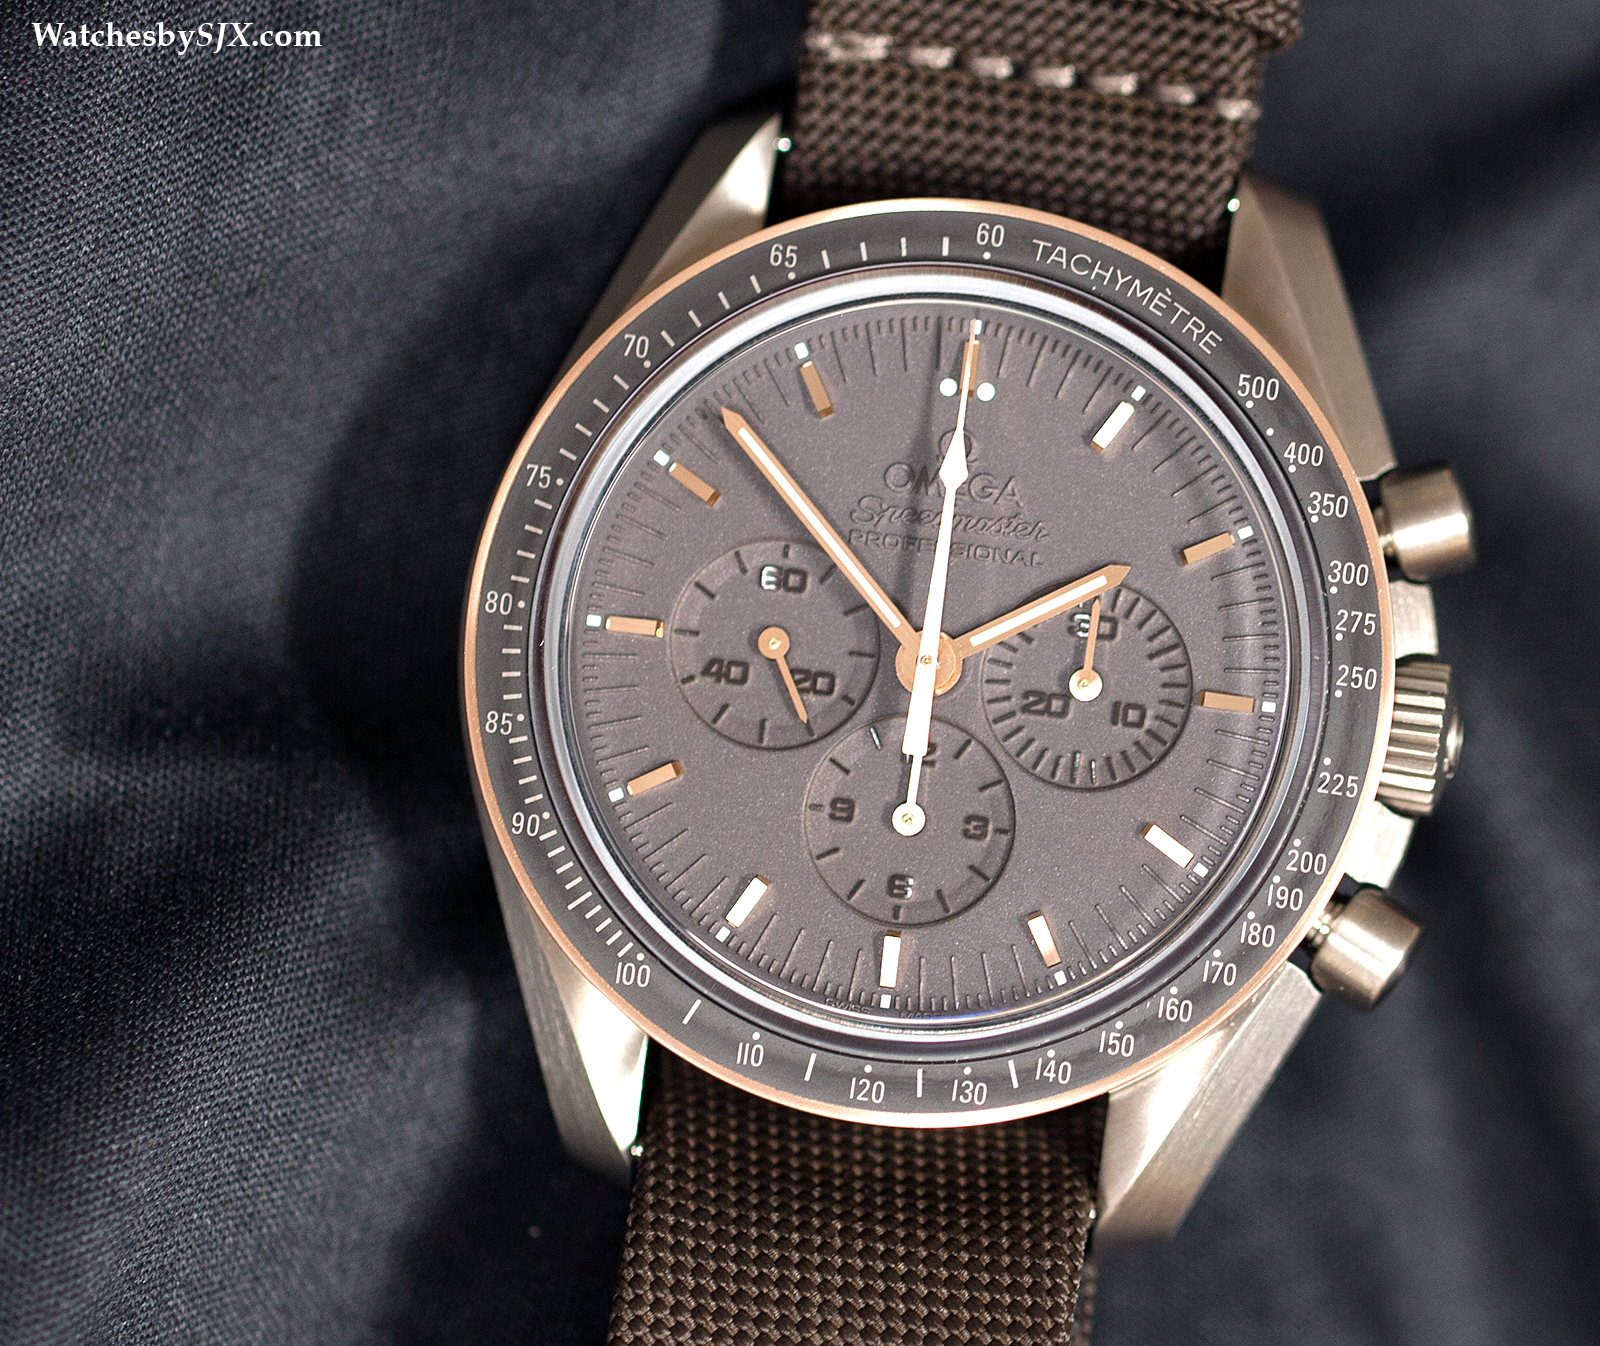 apollo 11 space mission watch - photo #5